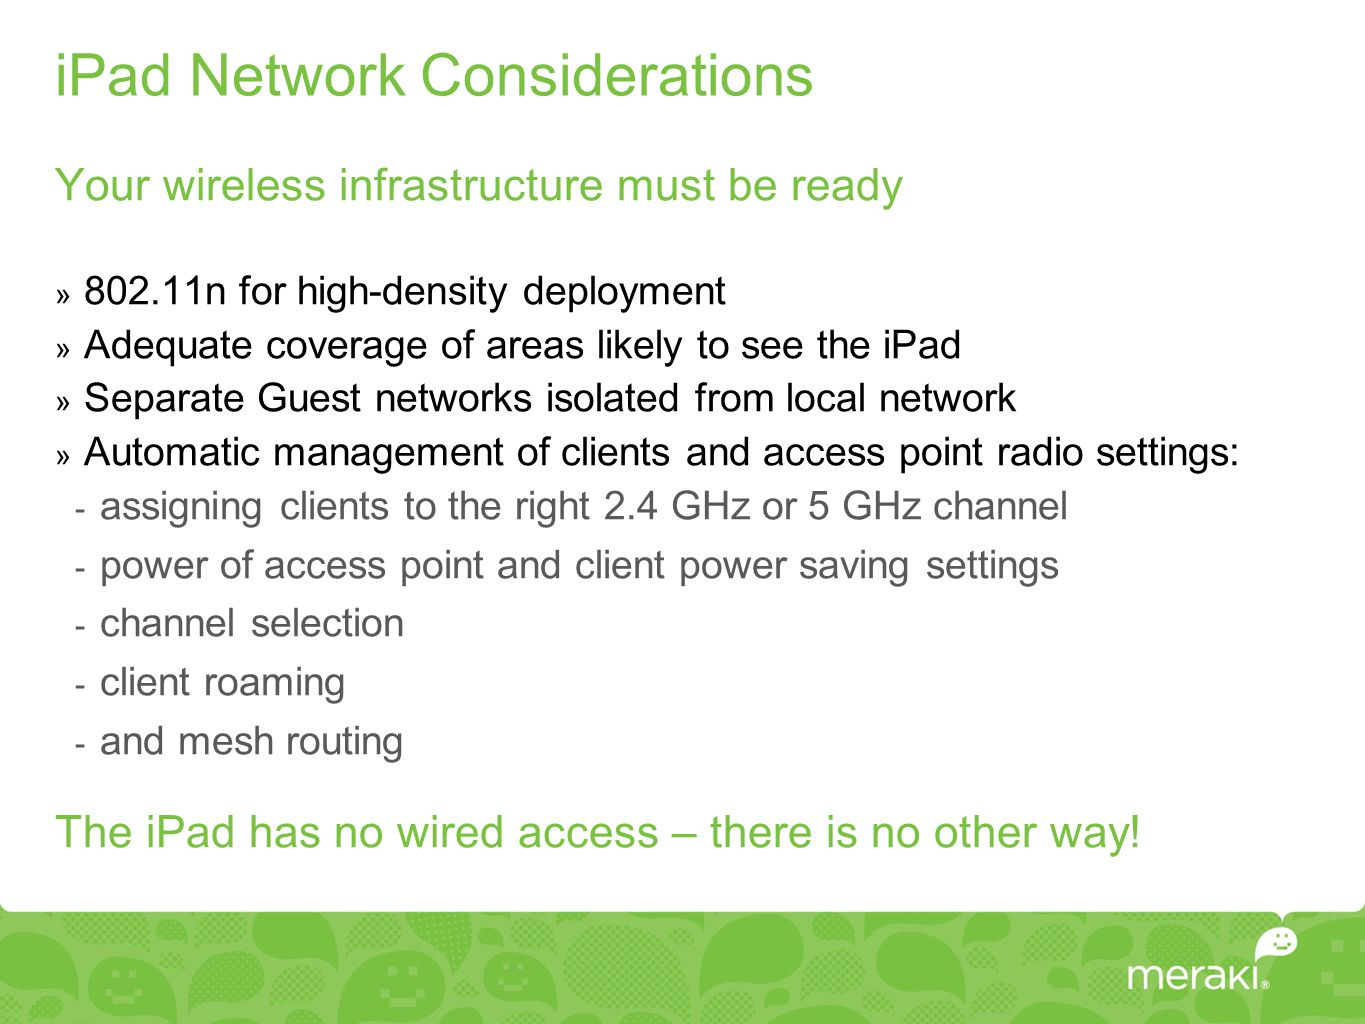 iPad Network Considerations Your wireless infrastructure must be ready » 802.11n for high-density deployment » Adequate coverage of areas likely to see the iPad » Separate Guest networks isolated from local network » Automatic management of clients and access point radio settings:  assigning clients to the right 2.4 GHz or 5 GHz channel  power of access point and client power saving settings  channel selection  client roaming  and mesh routing The iPad has no wired access – there is no other way!